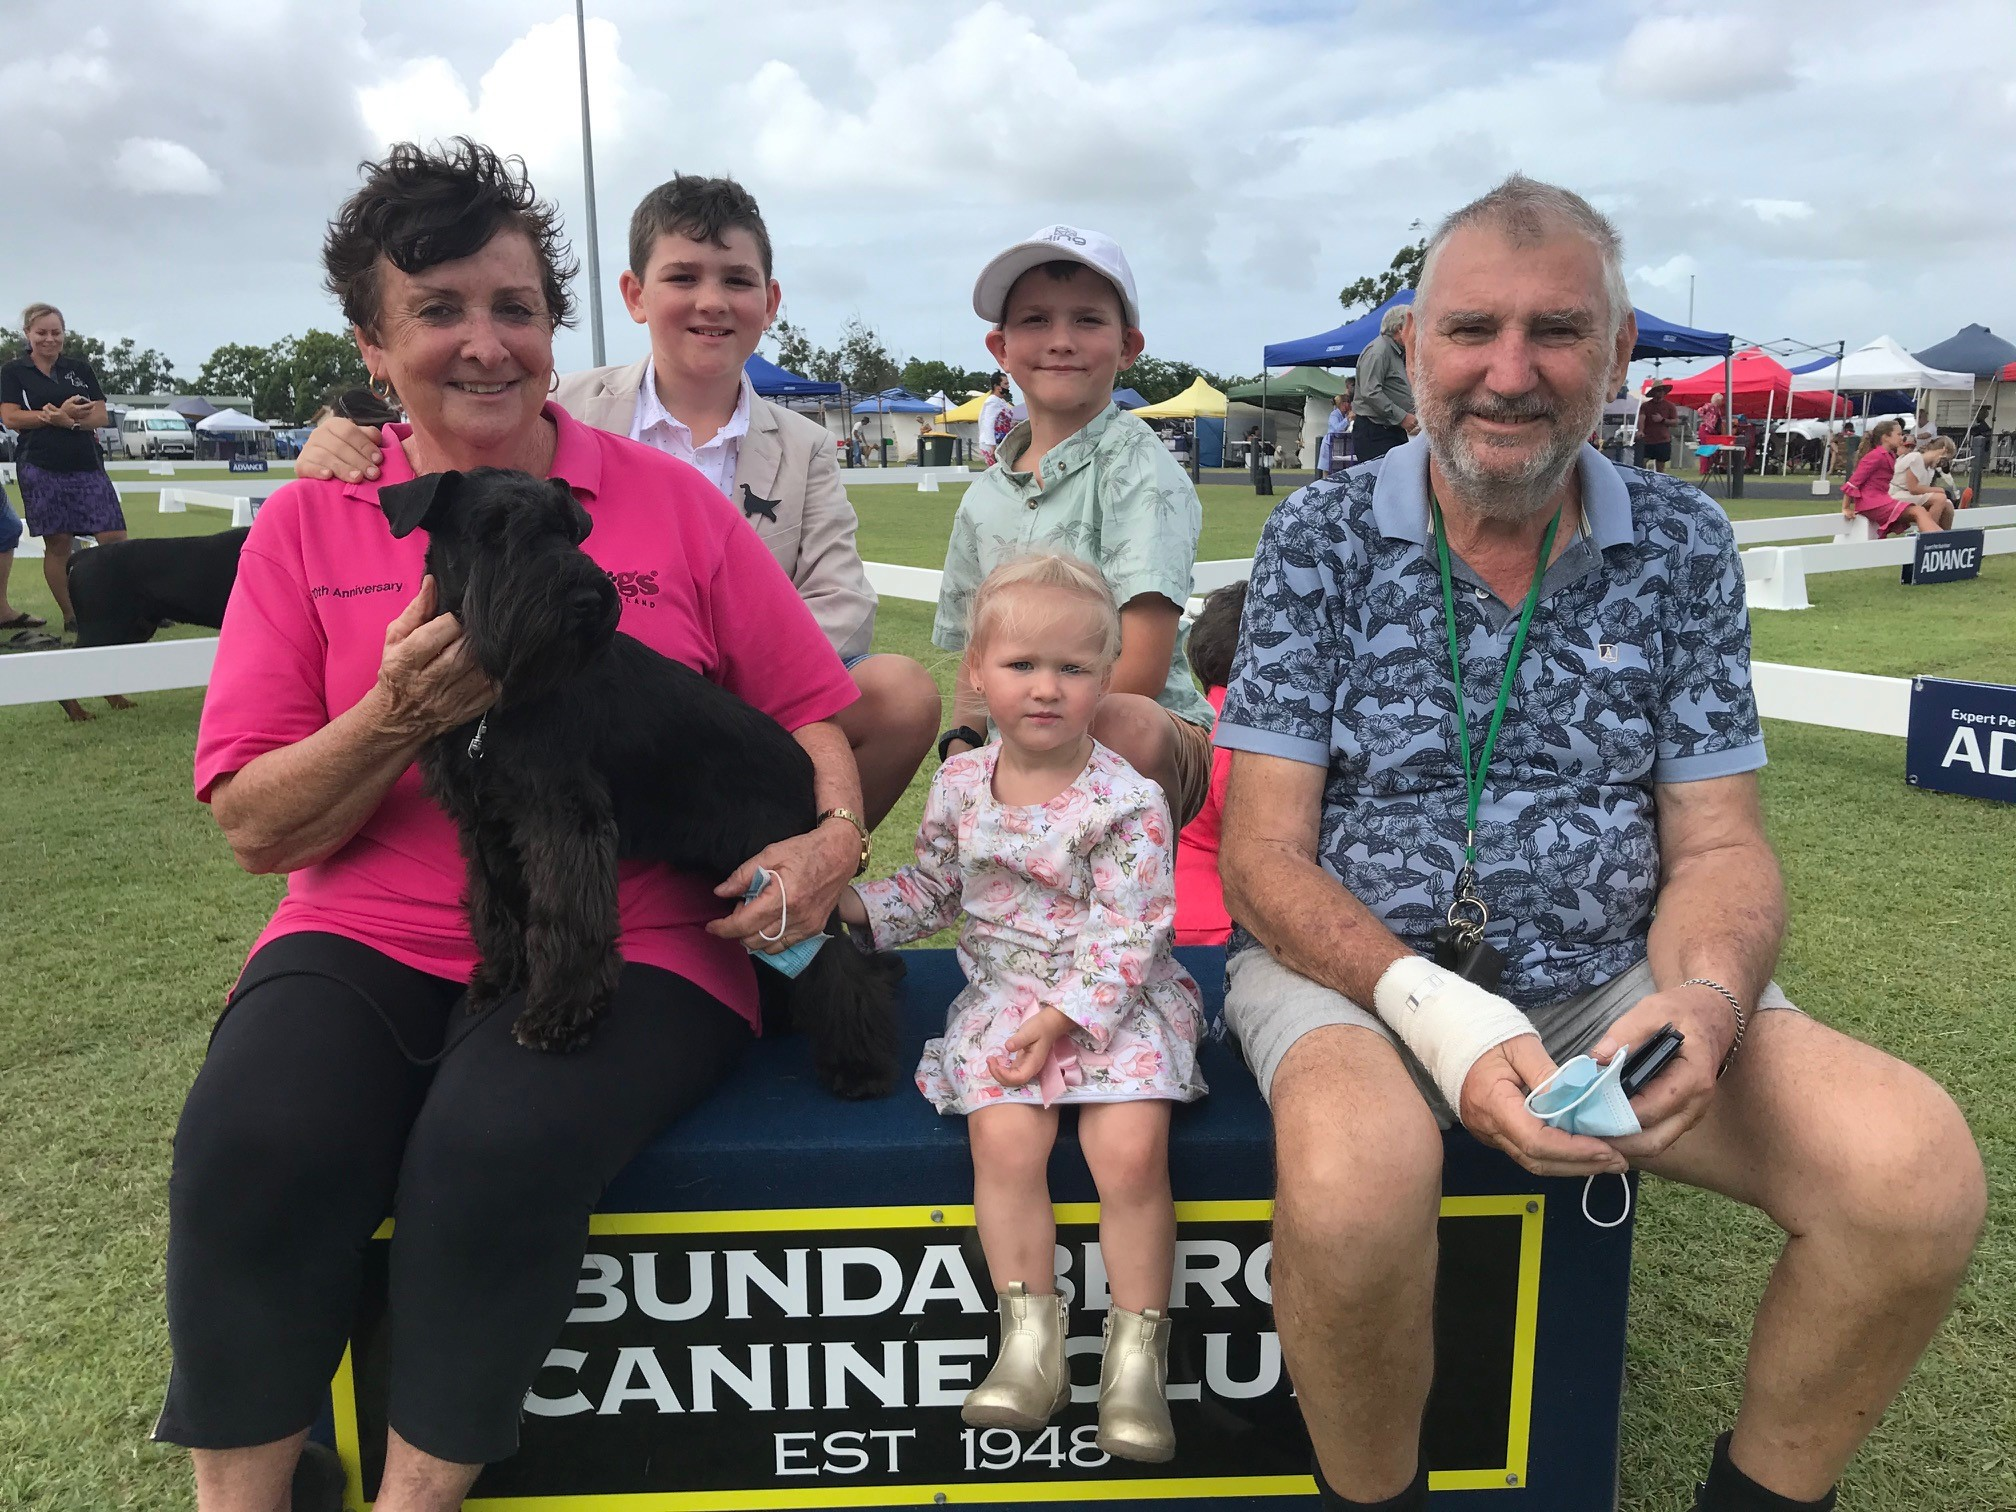 Bundaberg Canine Club